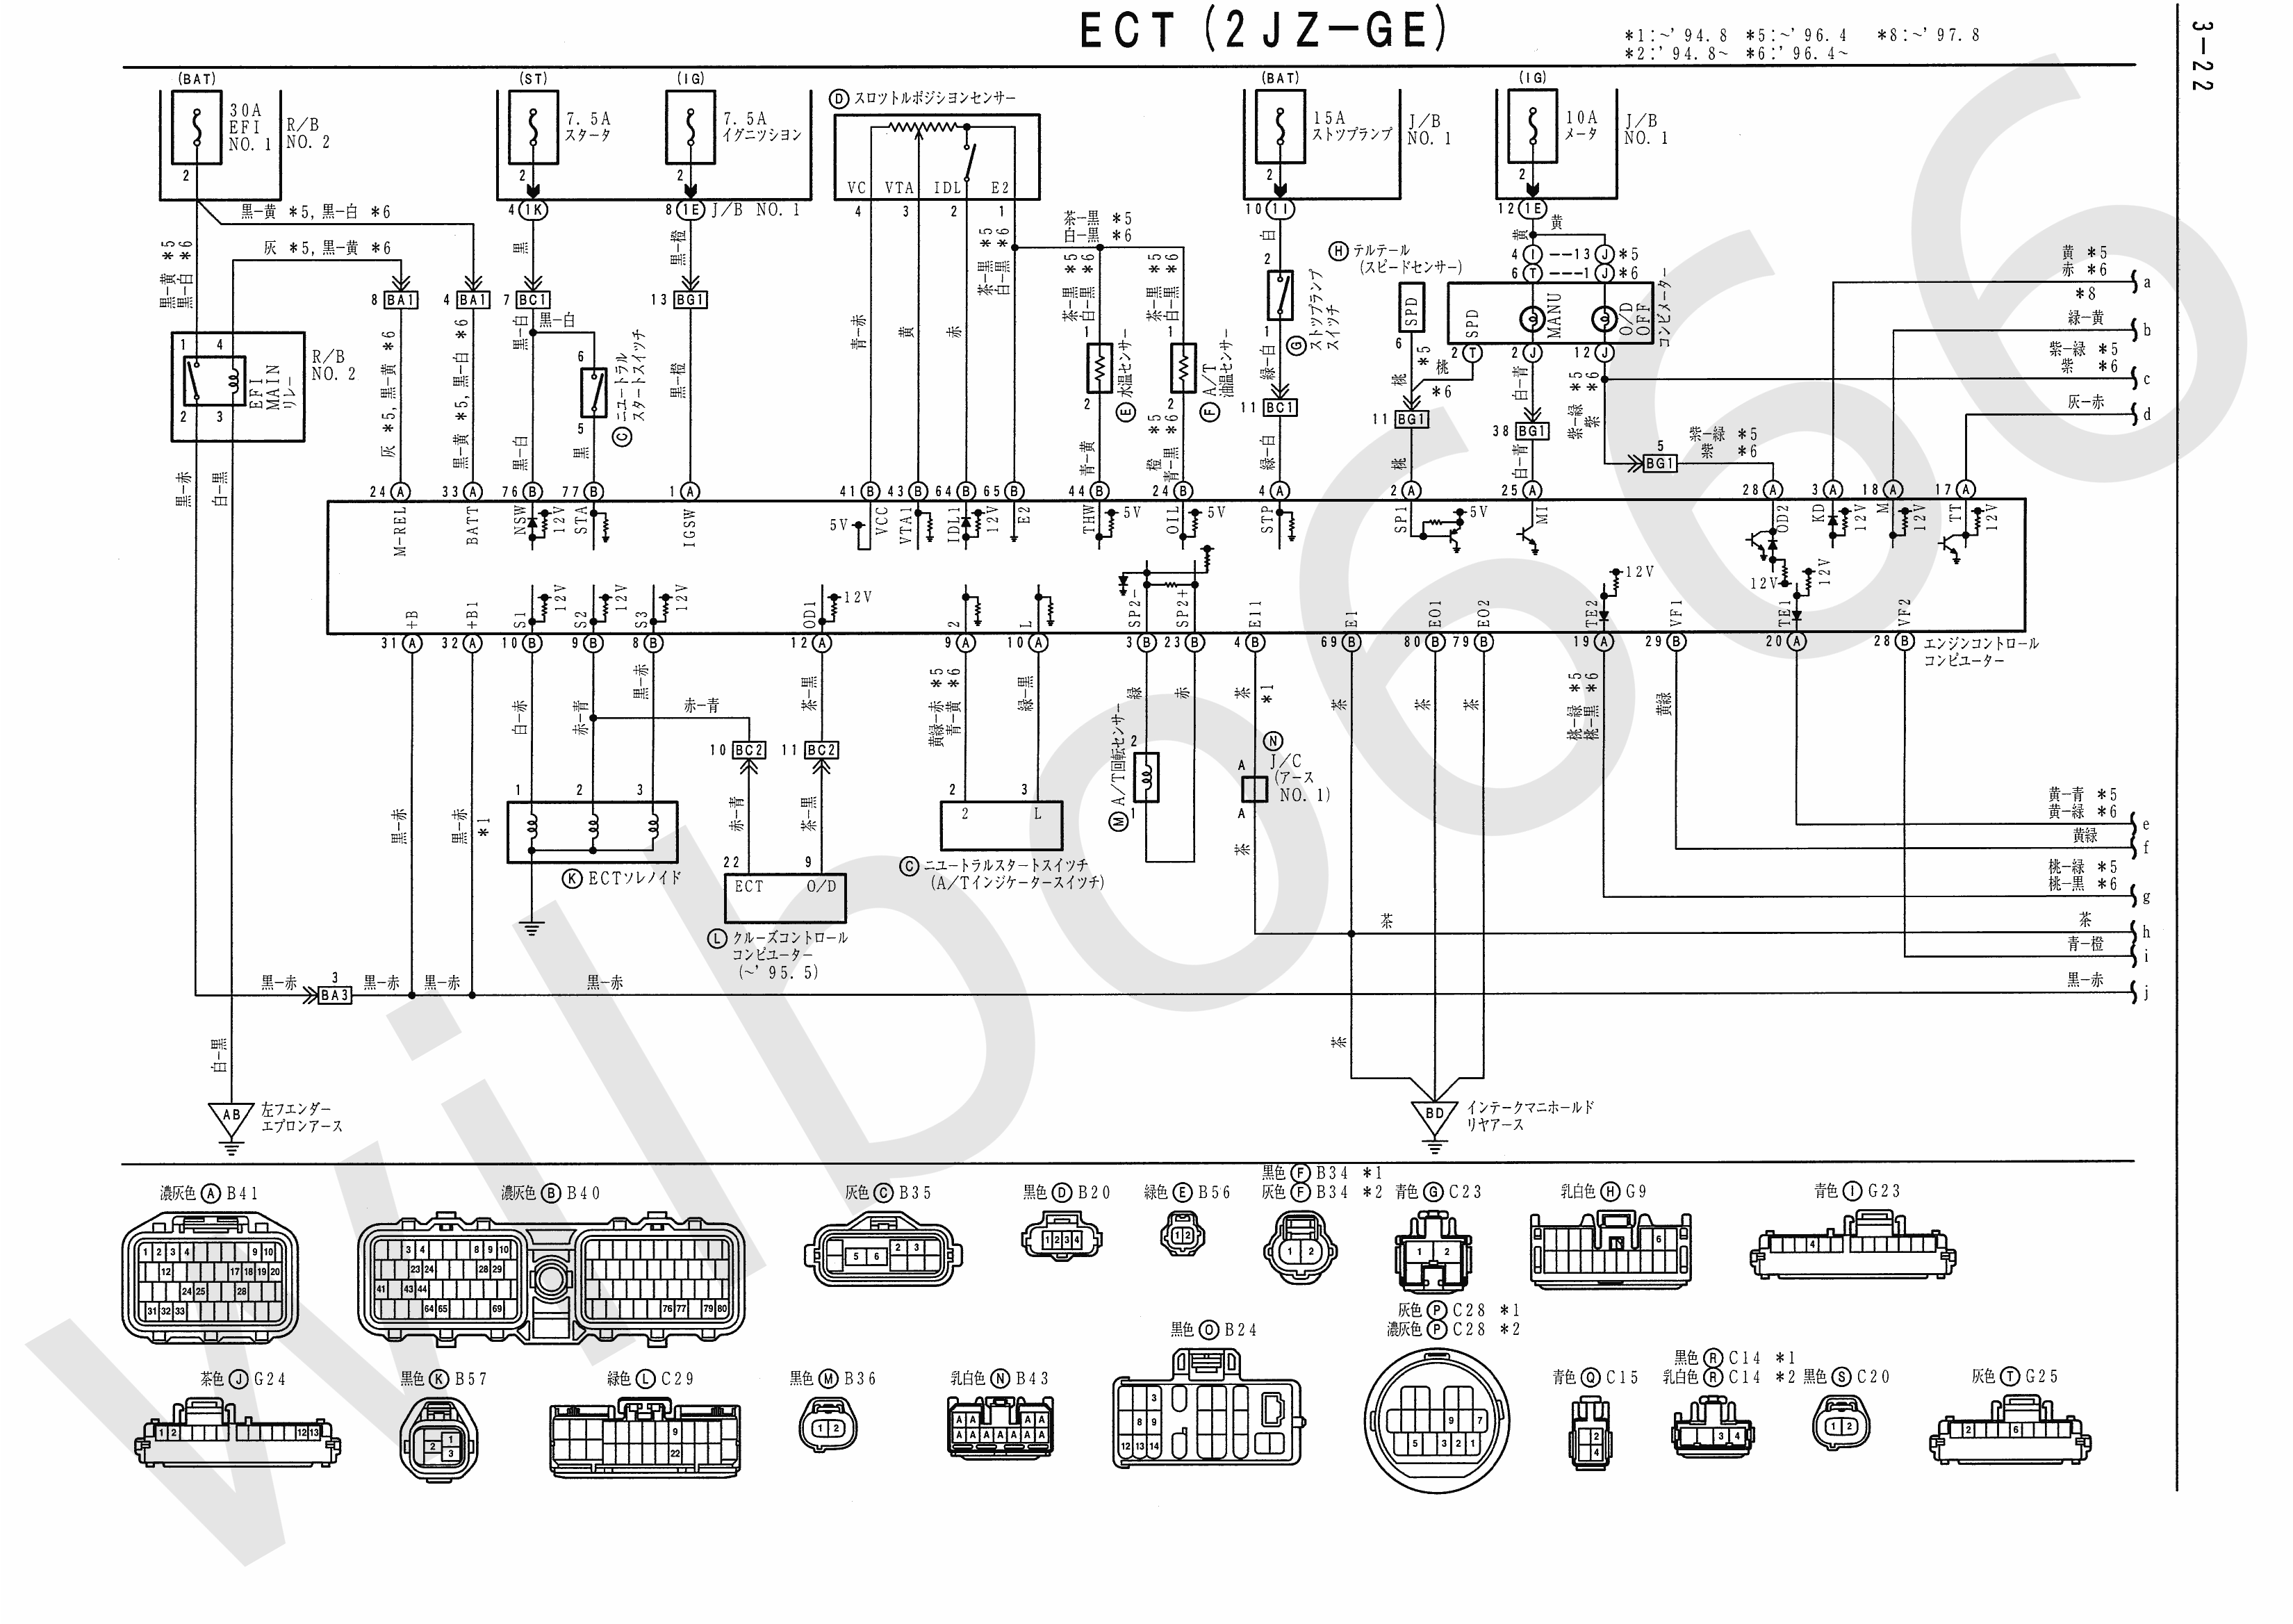 Sc300 Engine Diagram - Free Vehicle Wiring Diagrams • on 1994 land cruiser wiring diagram, 1994 4runner wiring diagram, 1994 300zx wiring diagram, 1994 camry wiring diagram, 1994 mustang wiring diagram, 1994 xj12 wiring diagram, 1994 corolla wiring diagram, 1994 civic wiring diagram, 1994 supra wiring diagram,